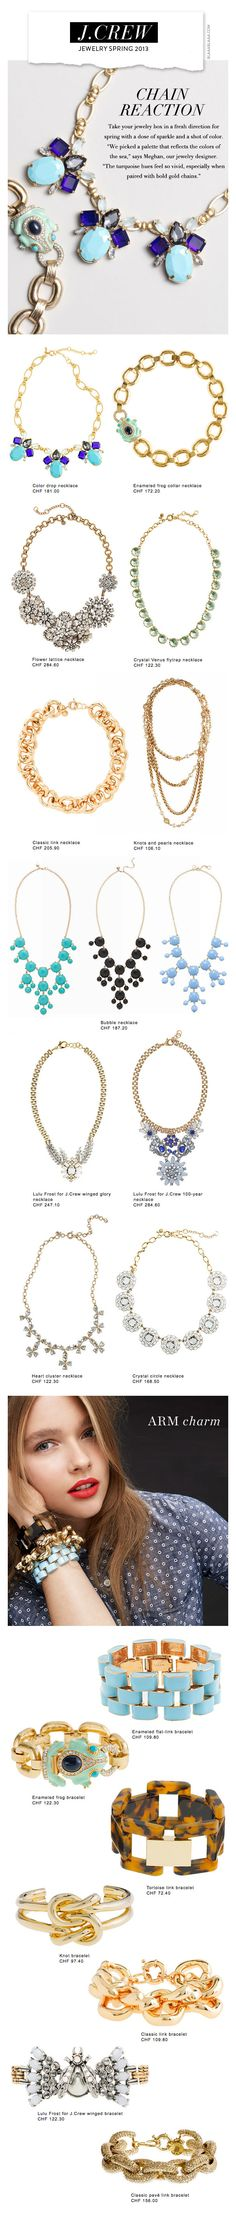 J.Crew Jewelry Spring 2013. Love everything minus the bubble necklaces. | I just died and went to heaven yup